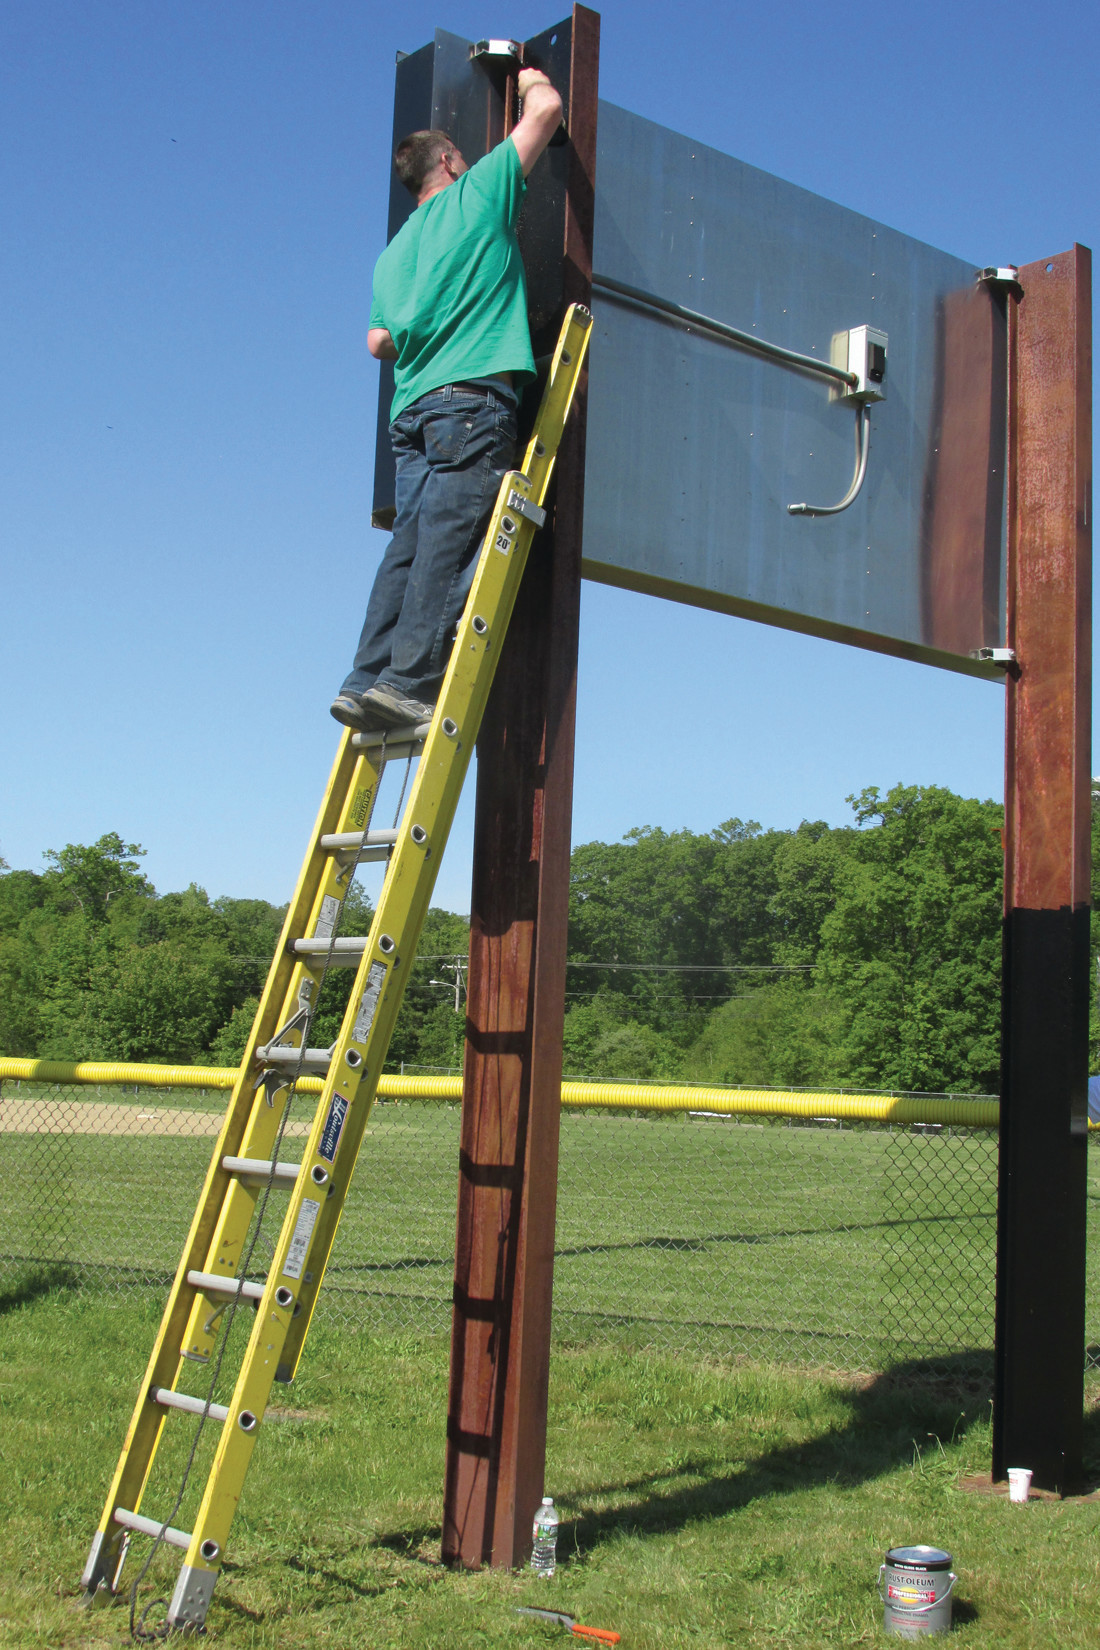 EXTENDED EFFORT: Citizens Bank staffer Ben Longtin used some extra effort – as well as an expandable ladder – to paint the steel support beam that holds the baseball scoreboard at Woodlake Park in Johnston. Sun Rise photos by Pete Fontaine